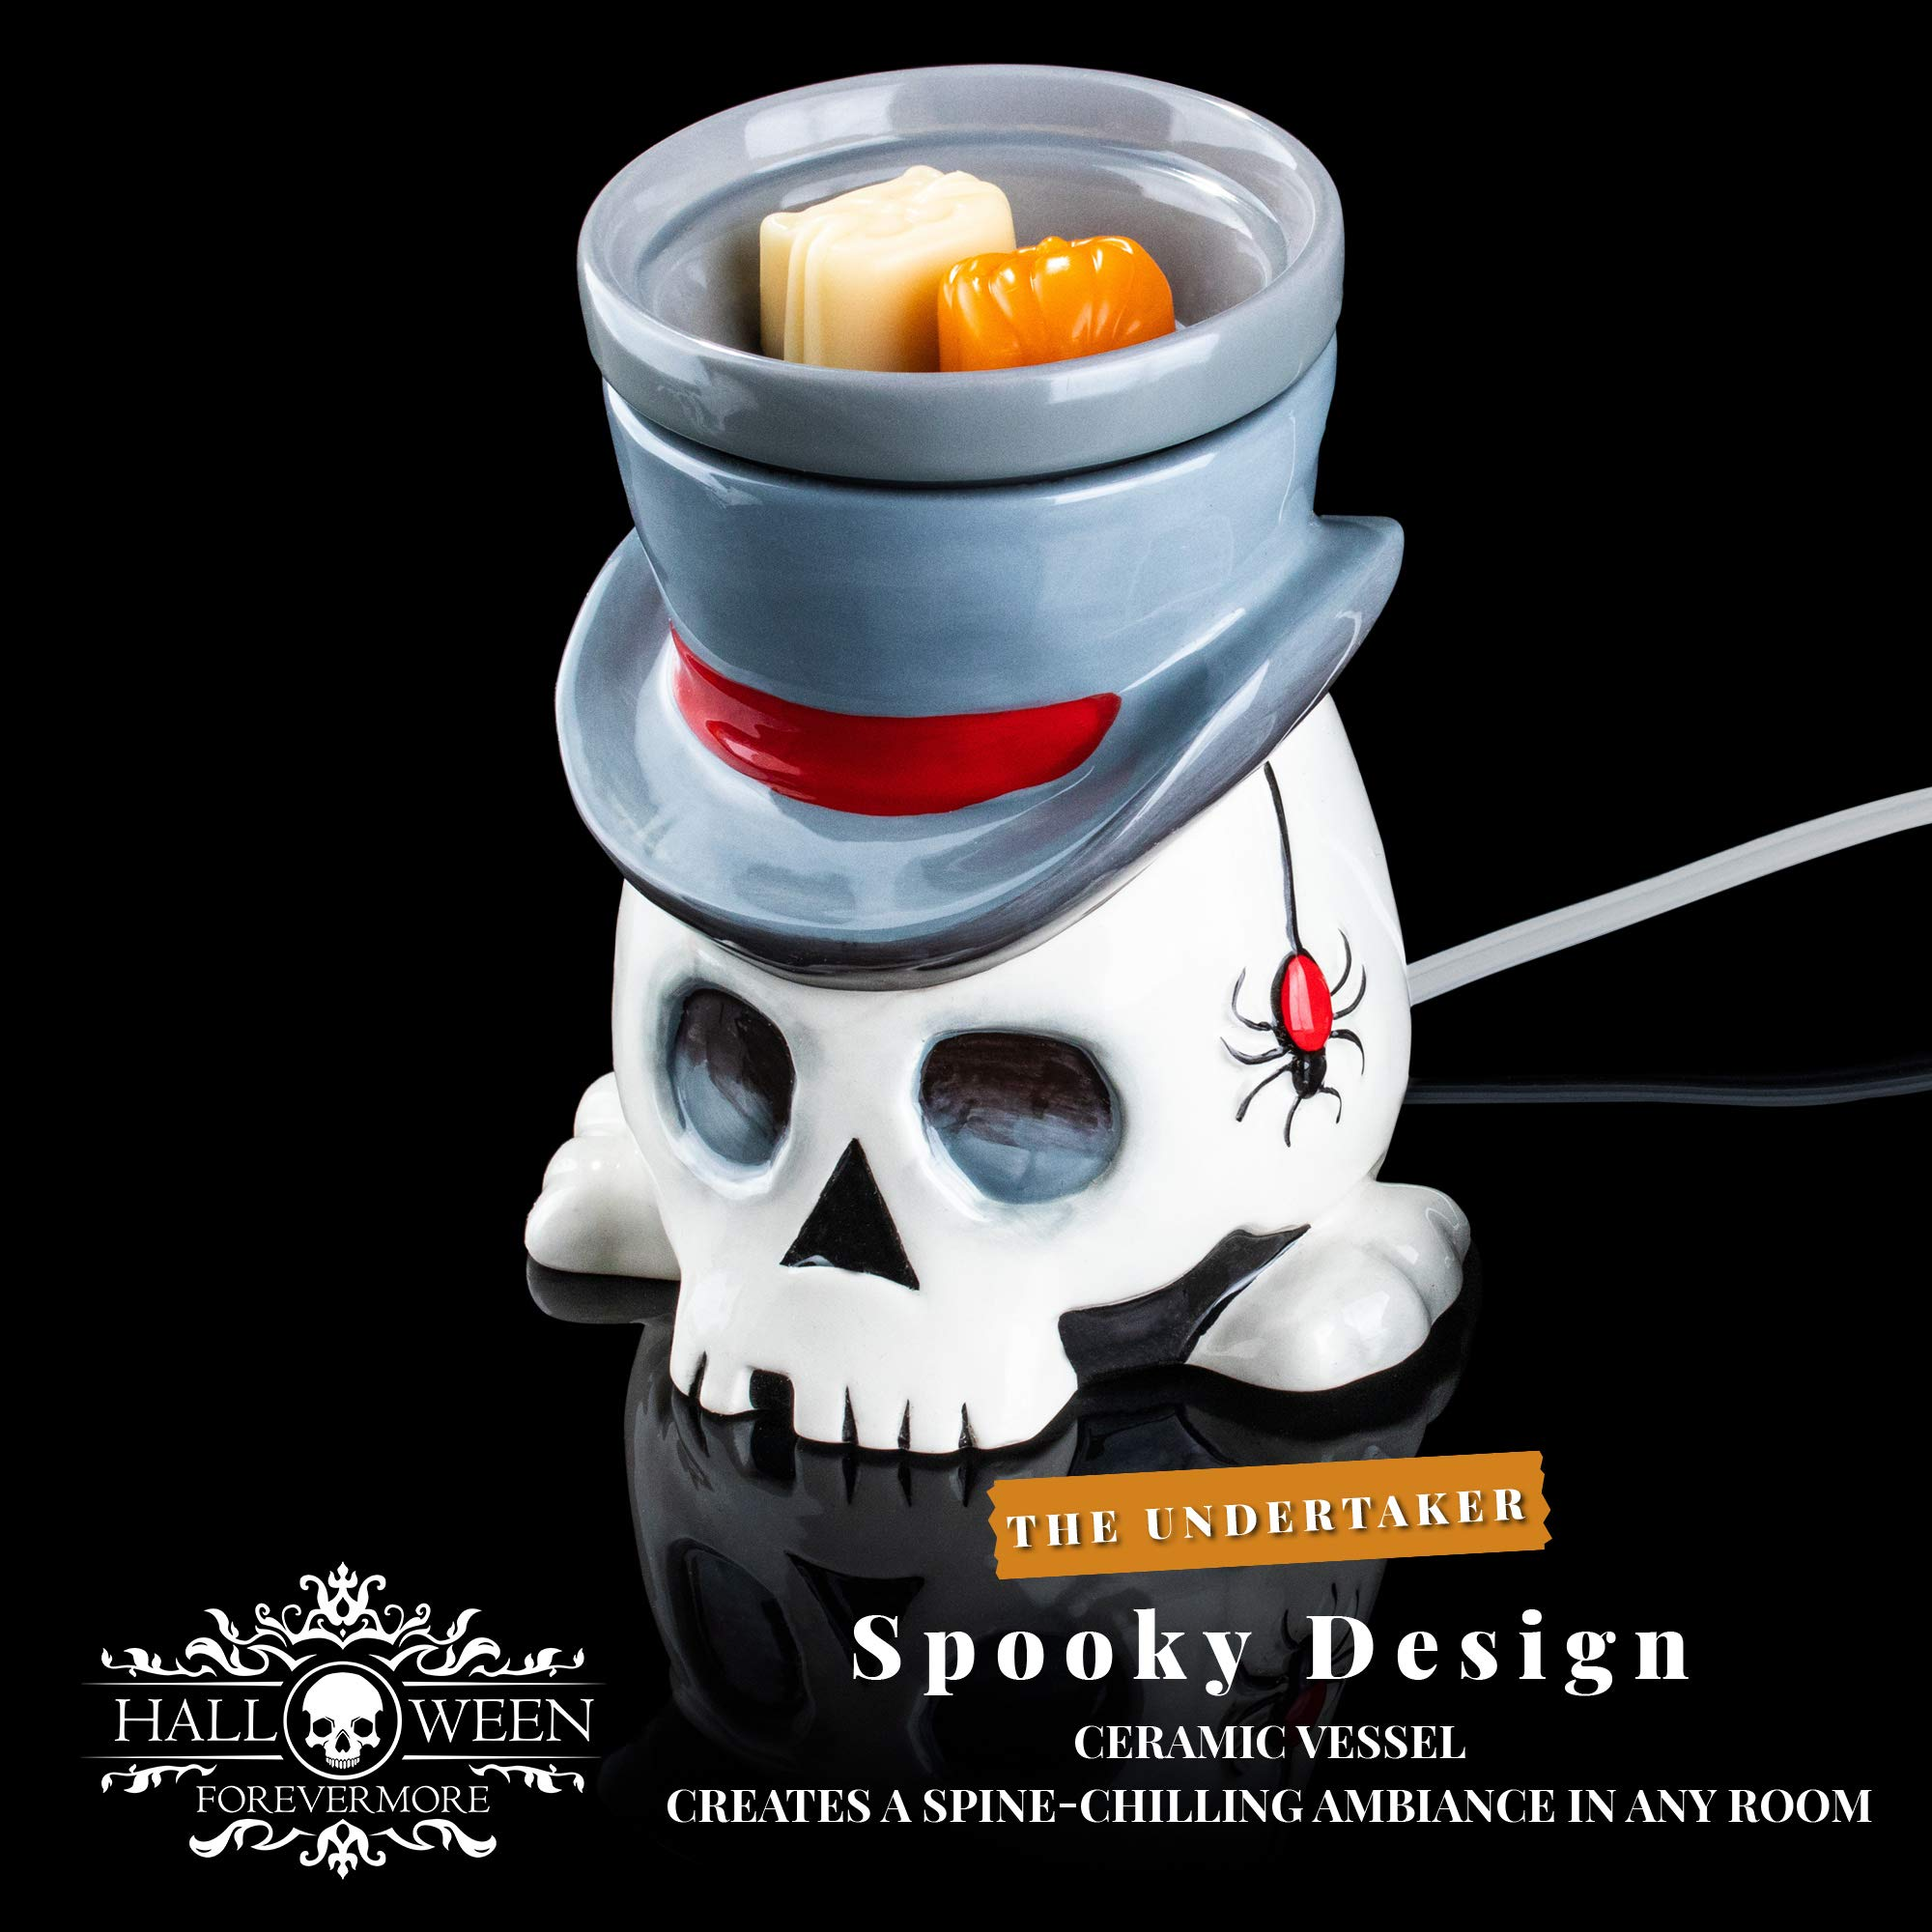 The Undertaker Horror Style Wax Warmer by Halloween Forevermore (Image #2)